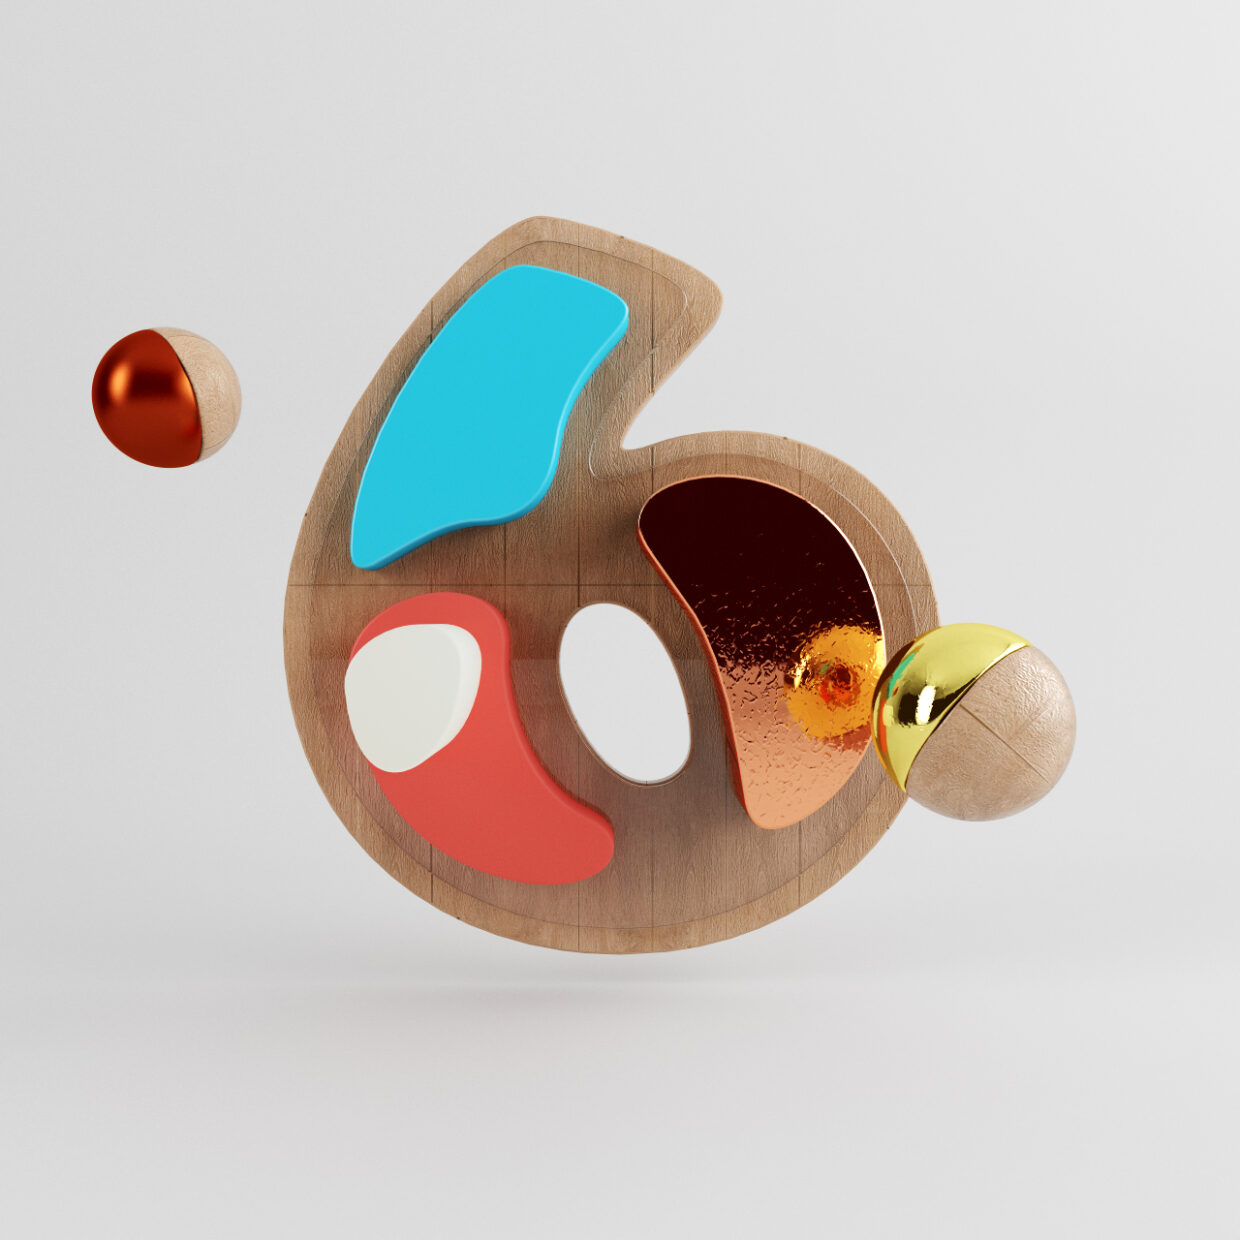 3D illustration of the number six made of wood and surrounded by two flying balls